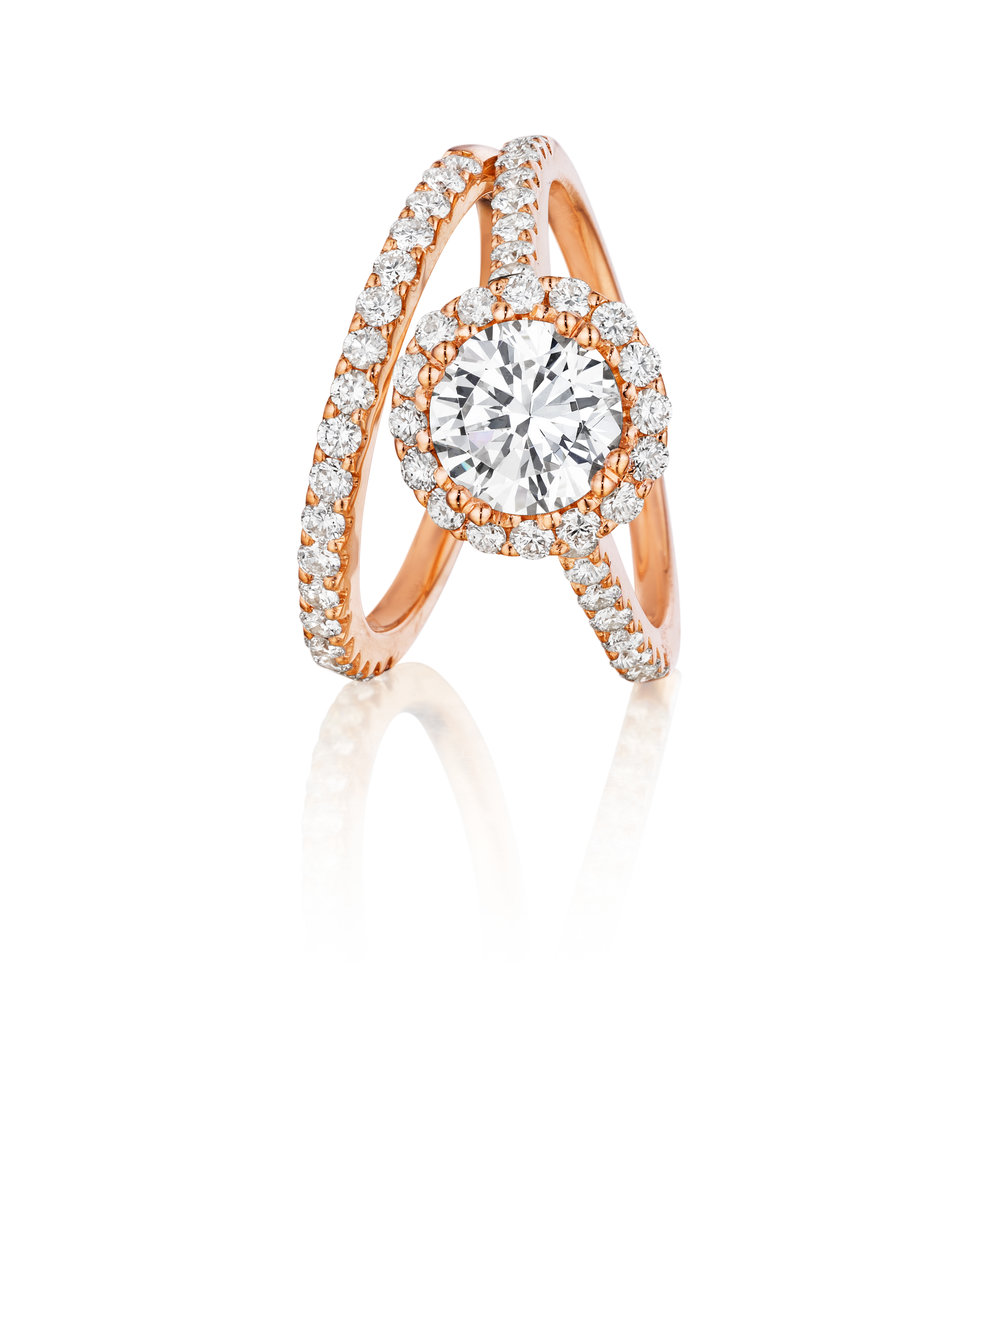 Even your wedding ring can have a rosy glow. This Gottlieb & Sons bridal set features almost 70 diamond of .85 ctw set in 18k rose gold. Bell Jewelers www.belljeweler.com